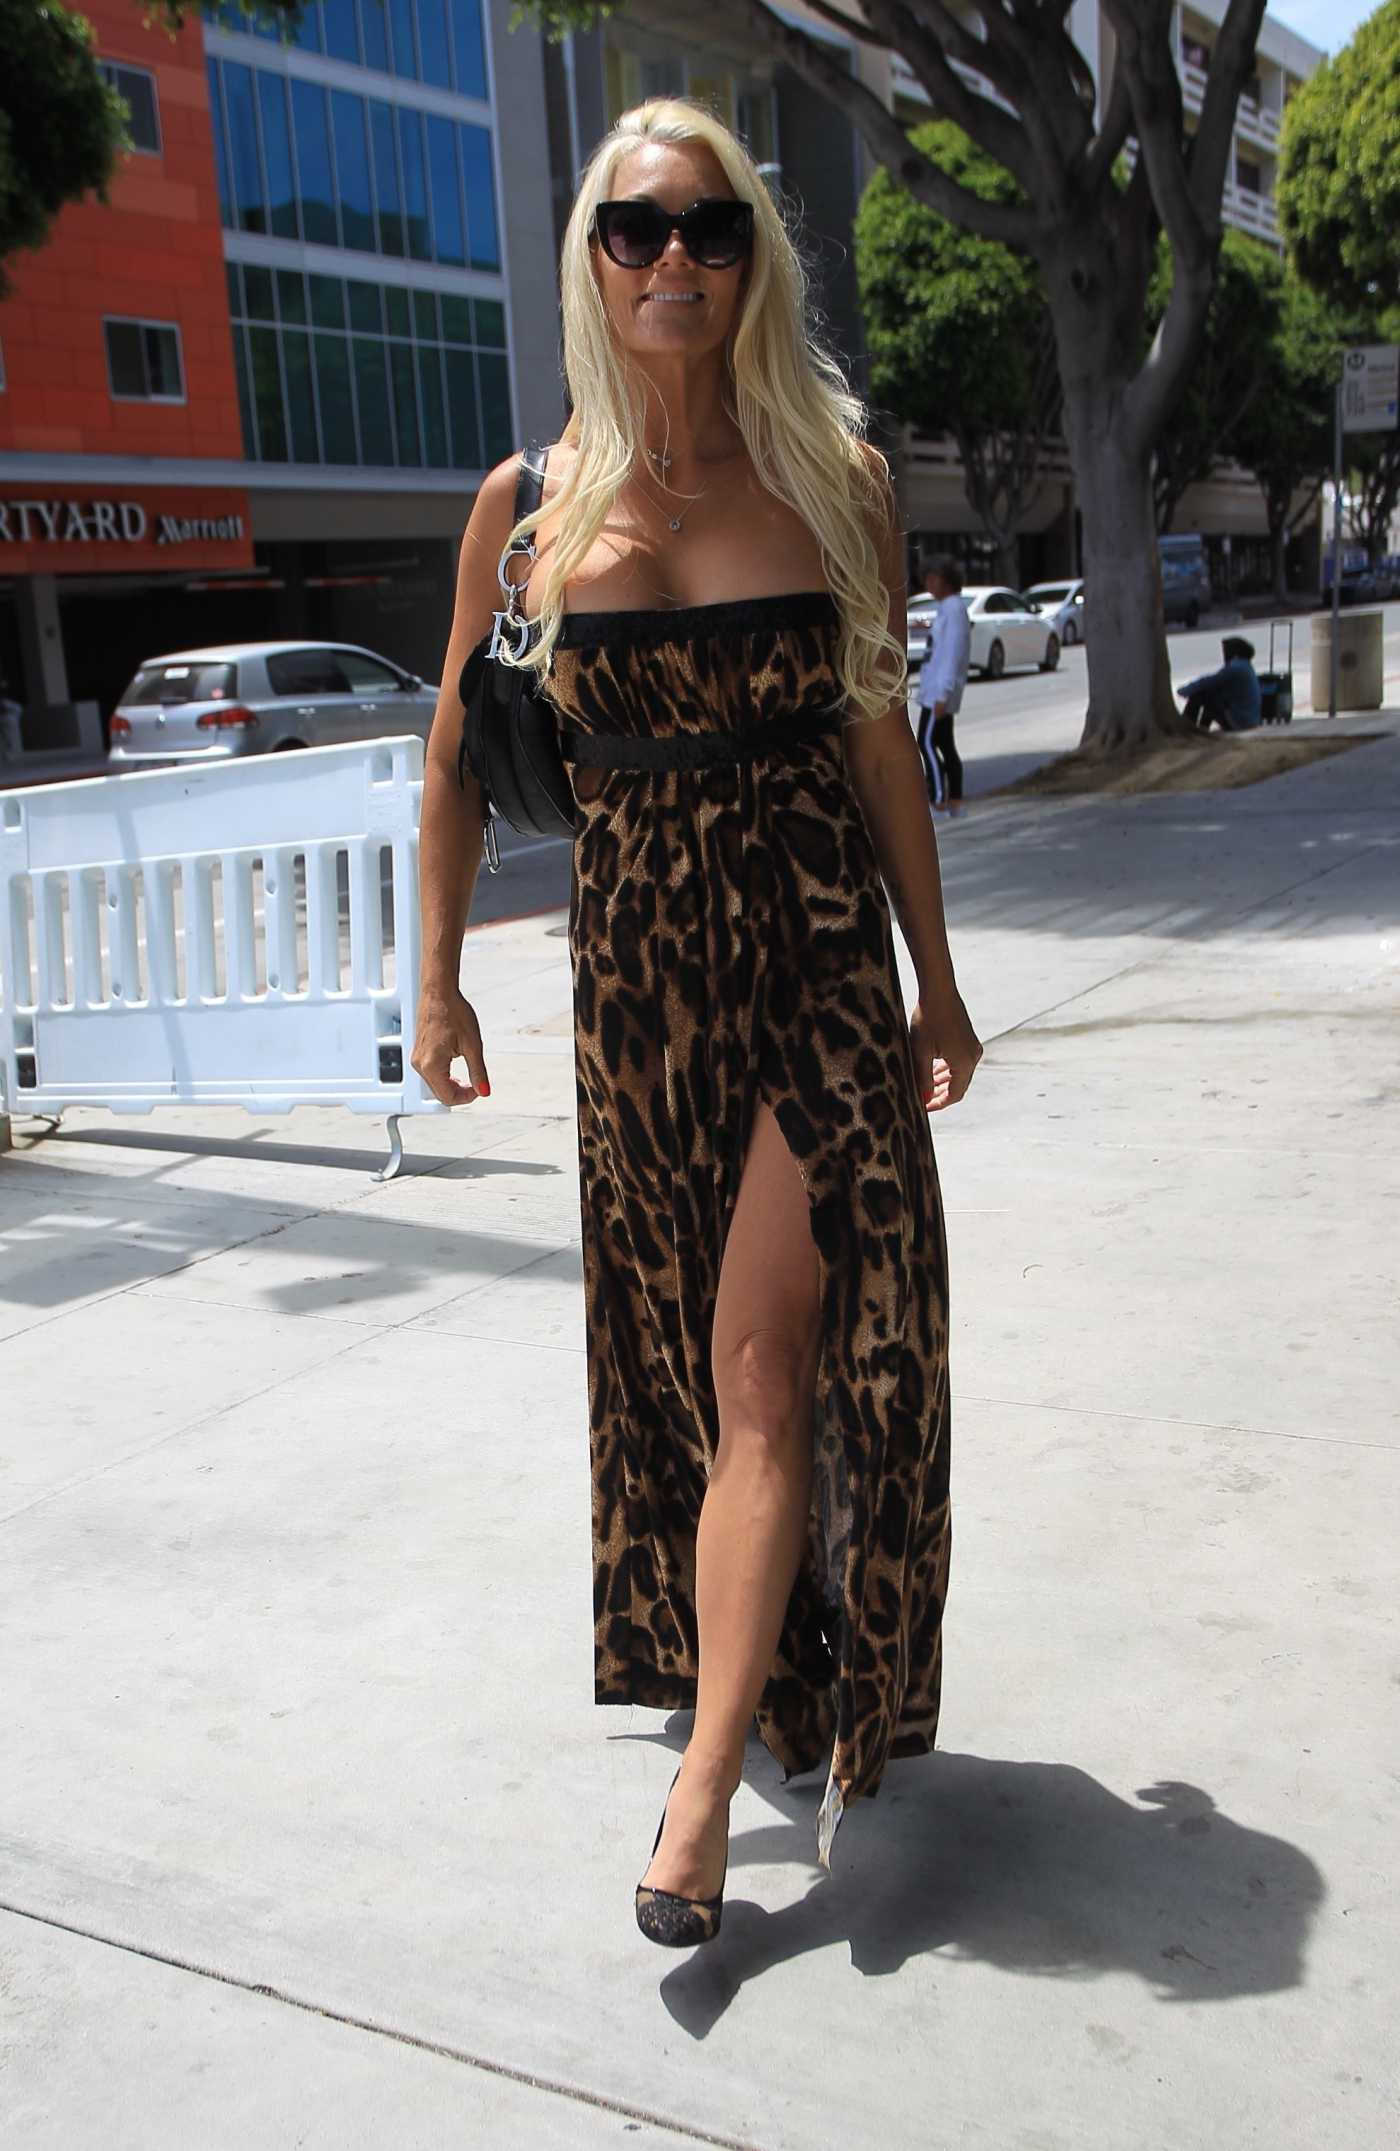 Heather Chadwell in an Animal Print Strapless Dress Was Seen Out in Santa Monica 05/31/2020